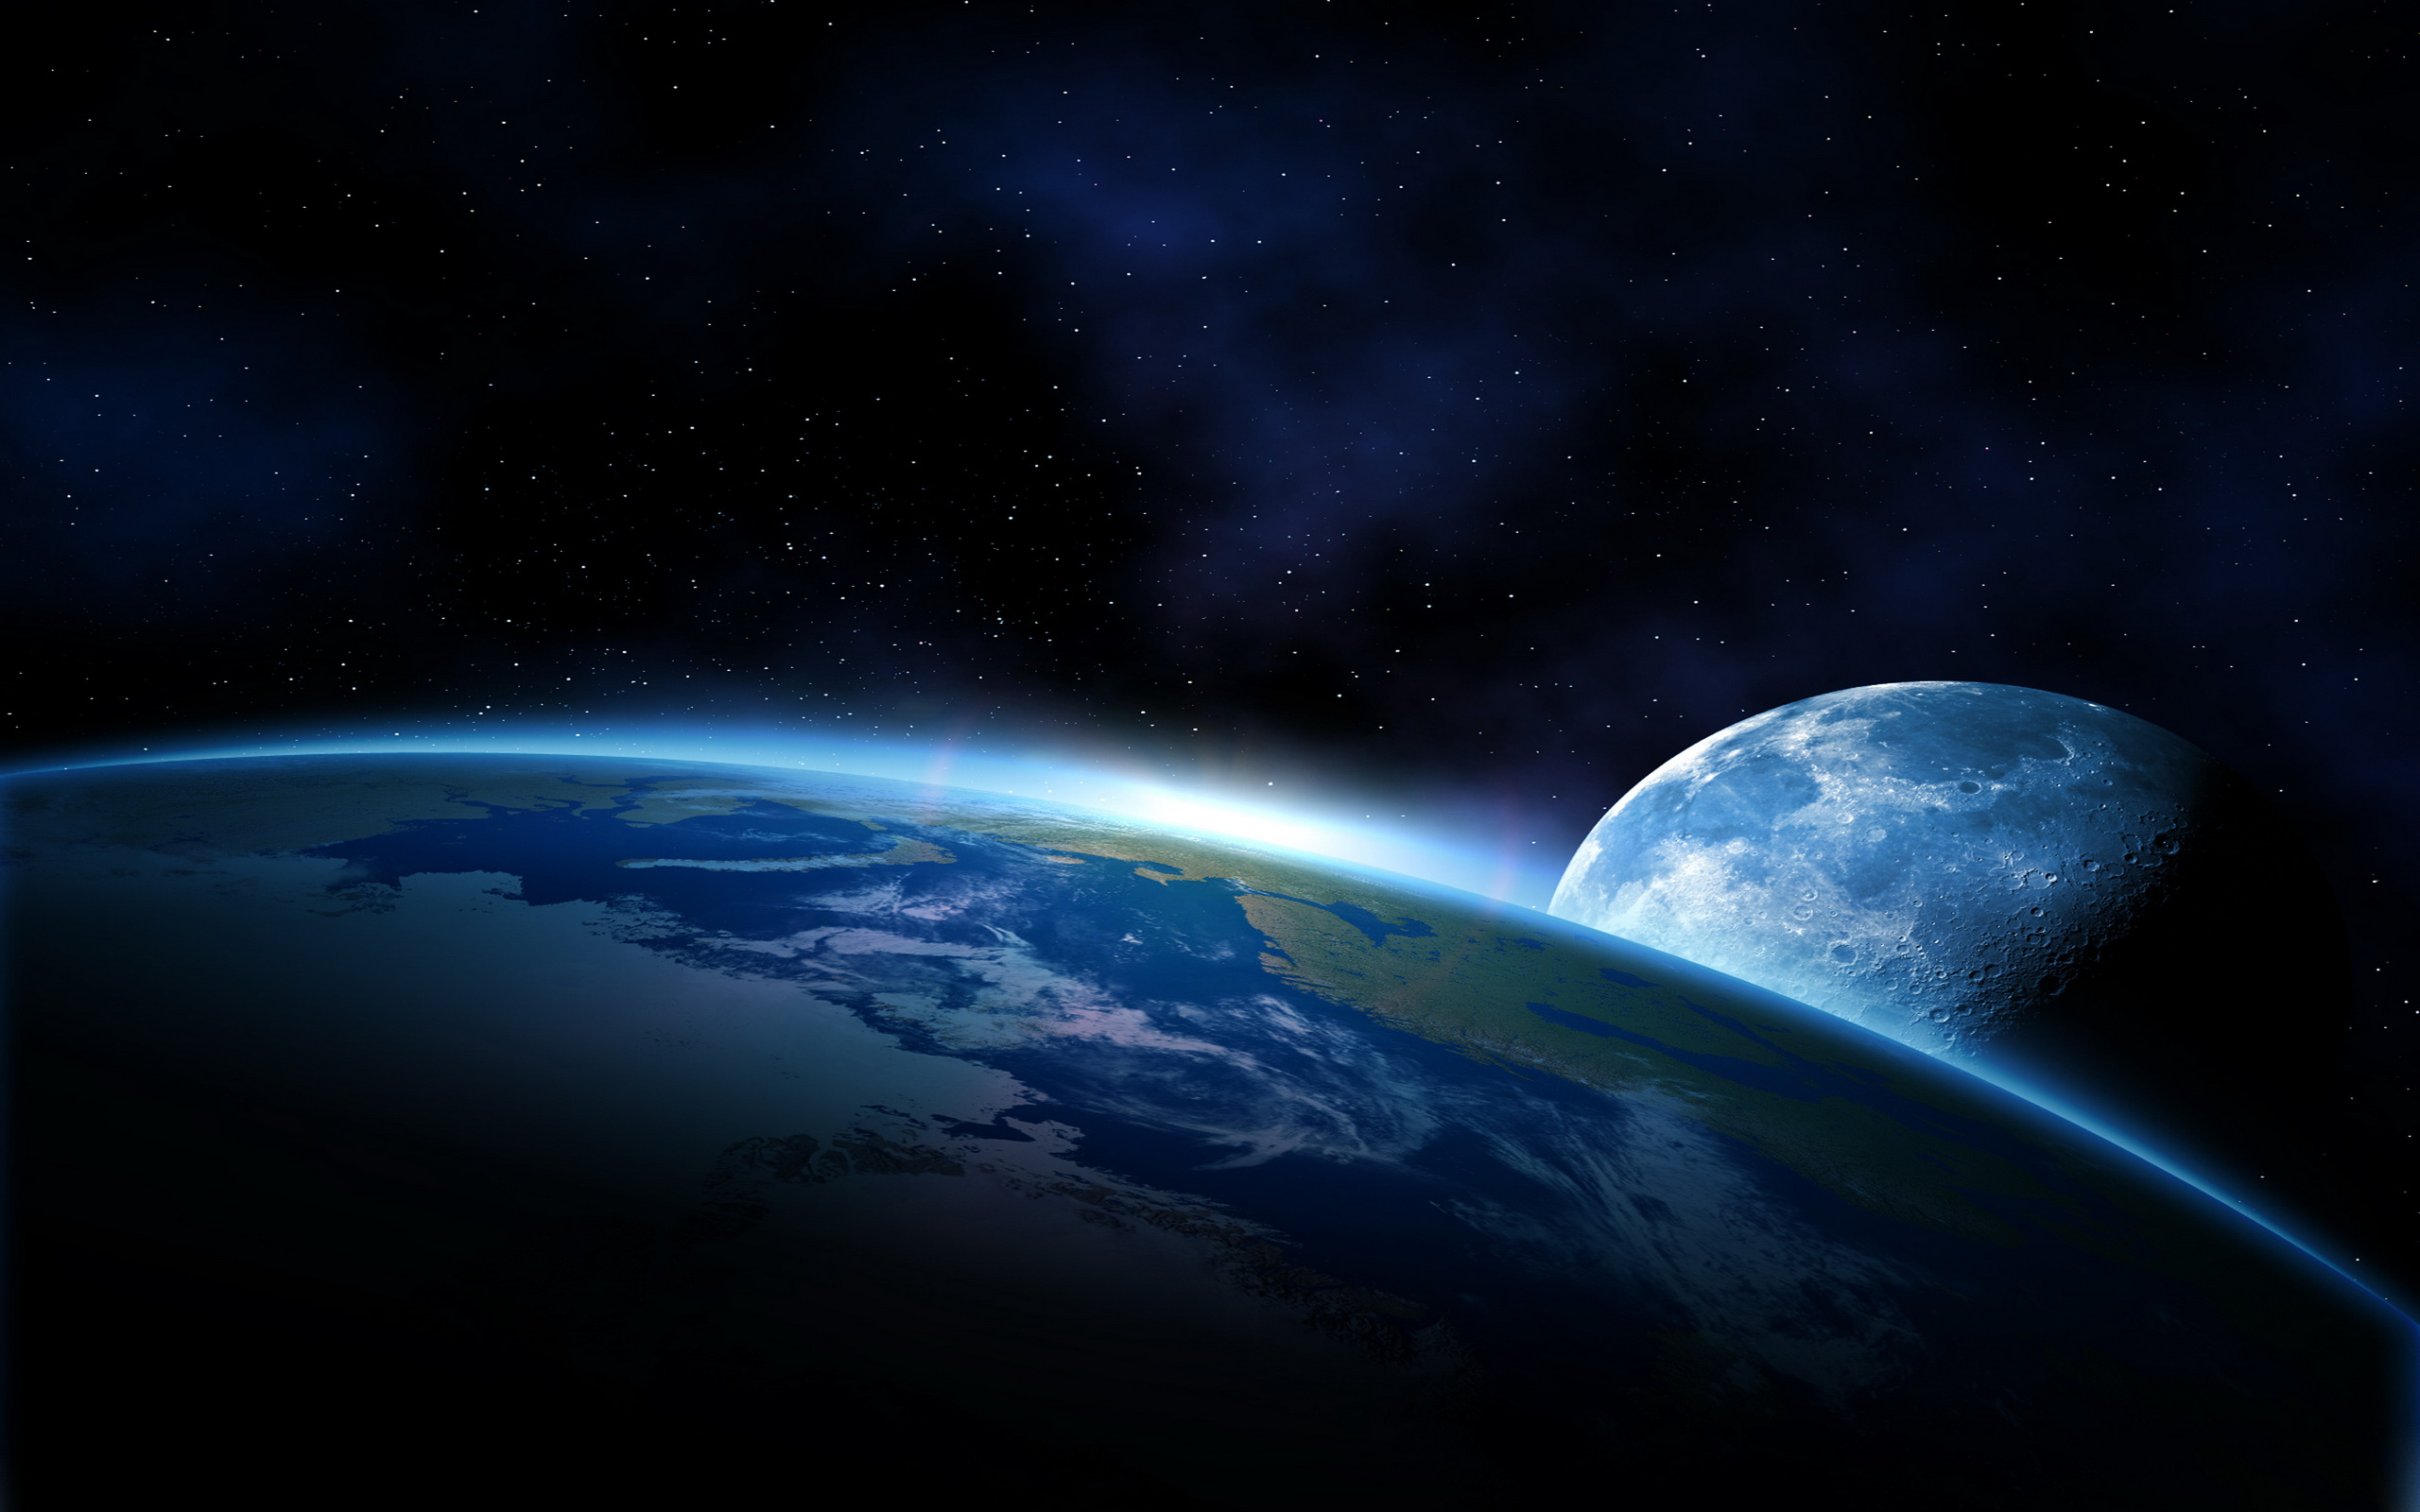 Animated Hd Wallpapers 1080p Free Download Earth From Space Wallpapers Hd Pixelstalk Net